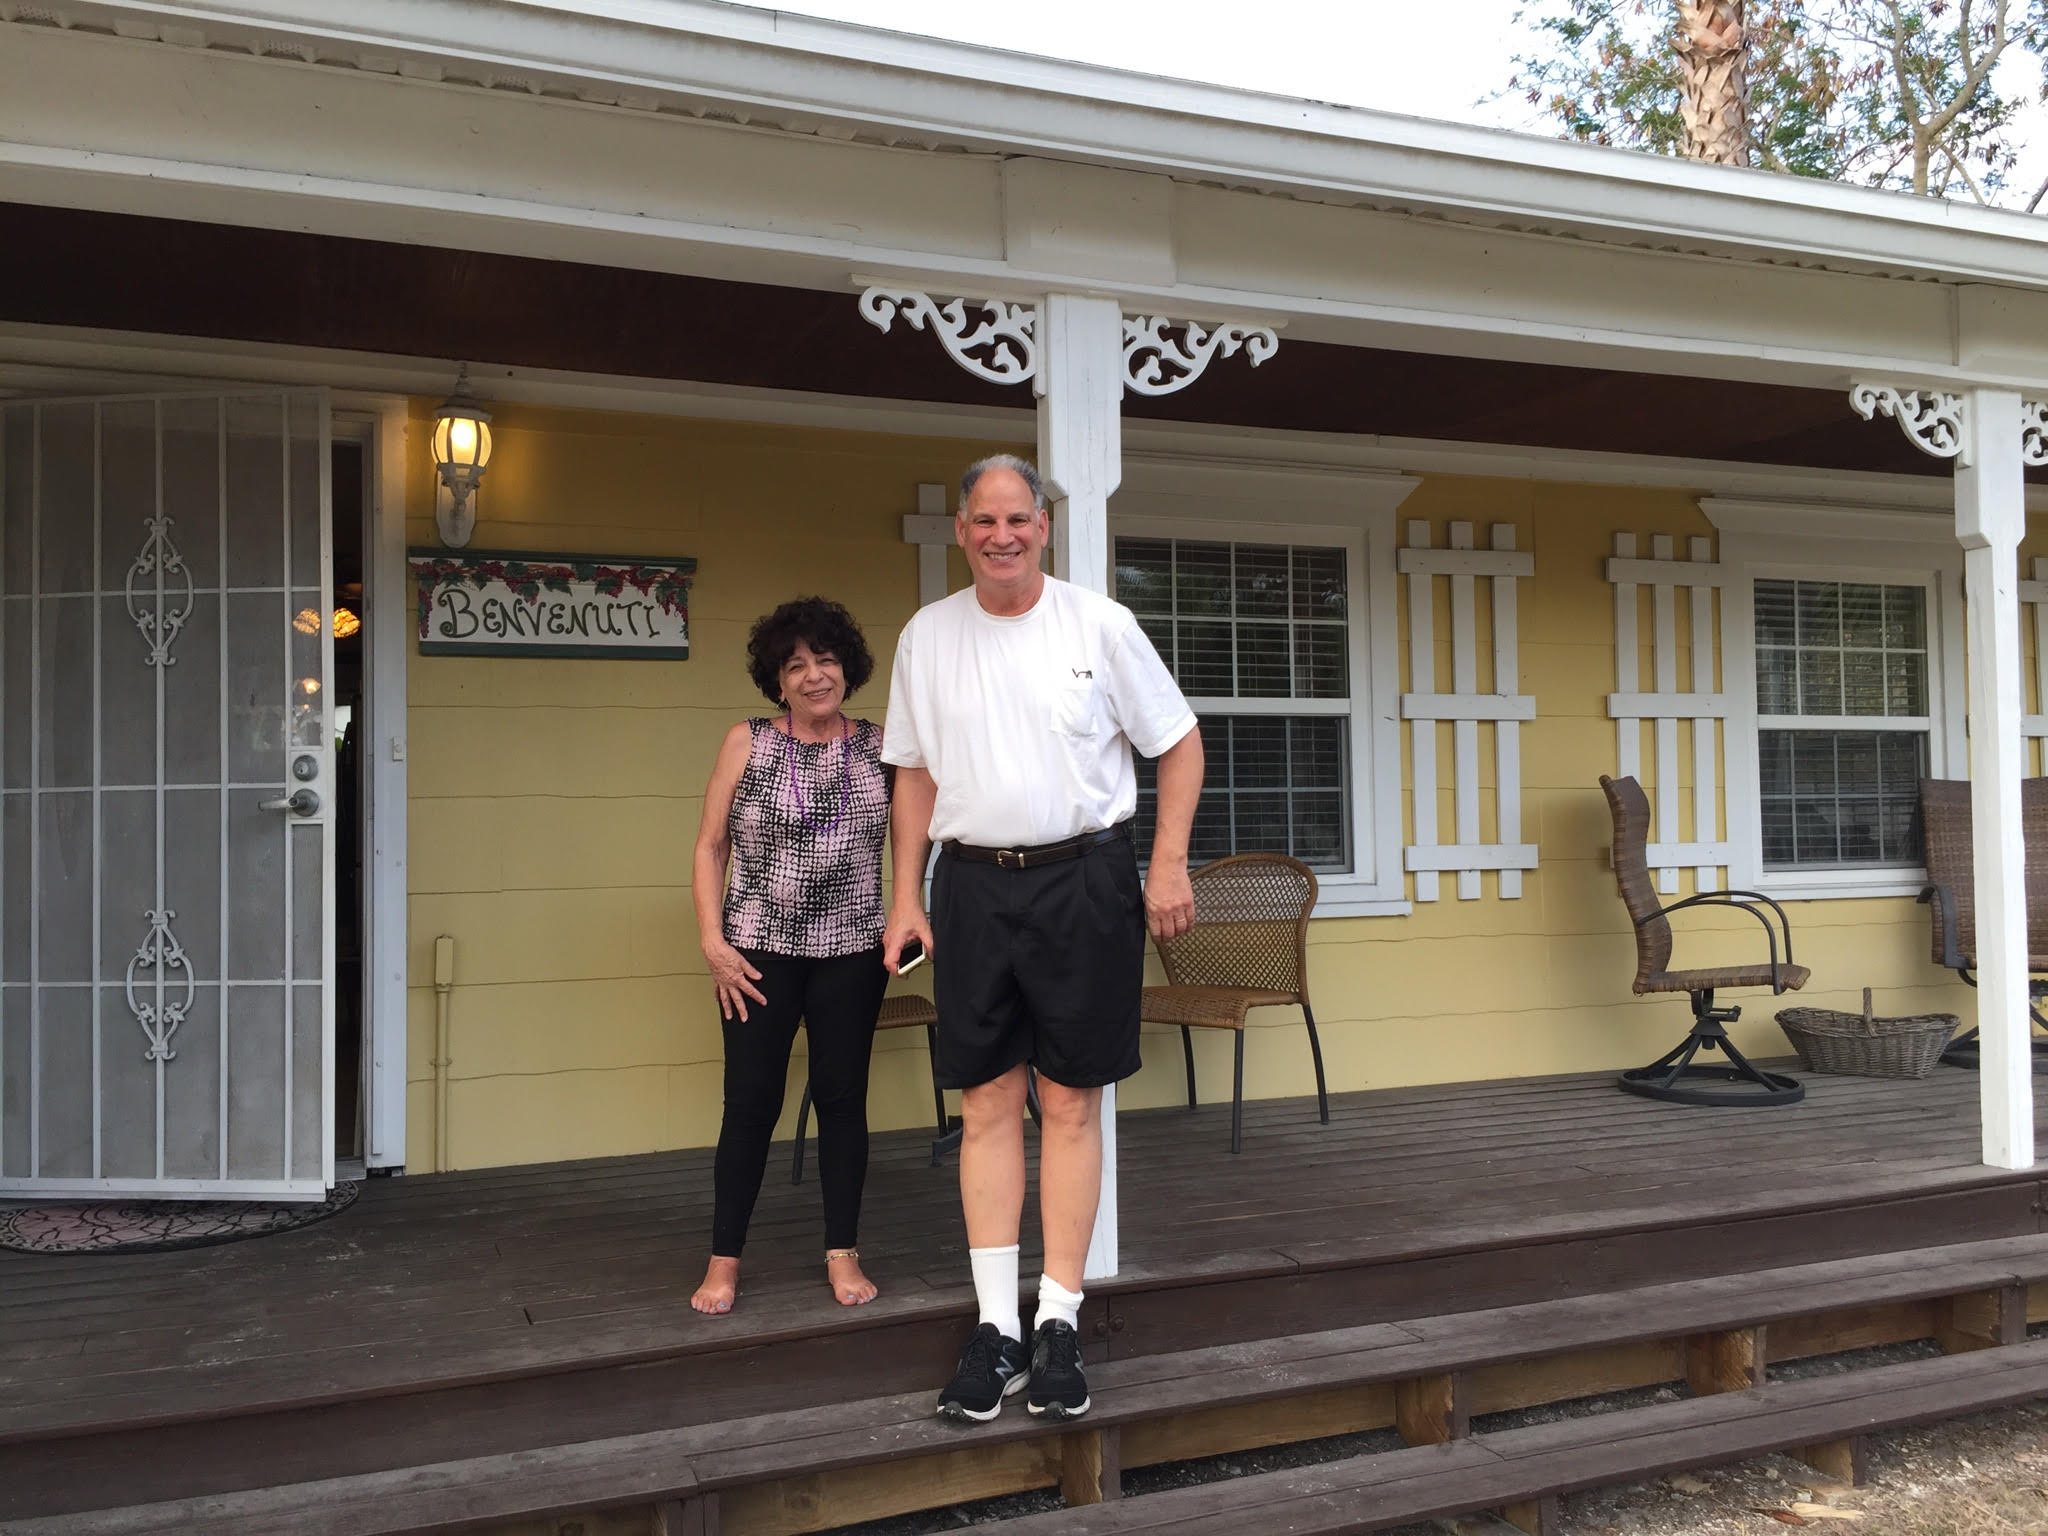 A tall man and short woman standing on a front porch and smiling for the camera.